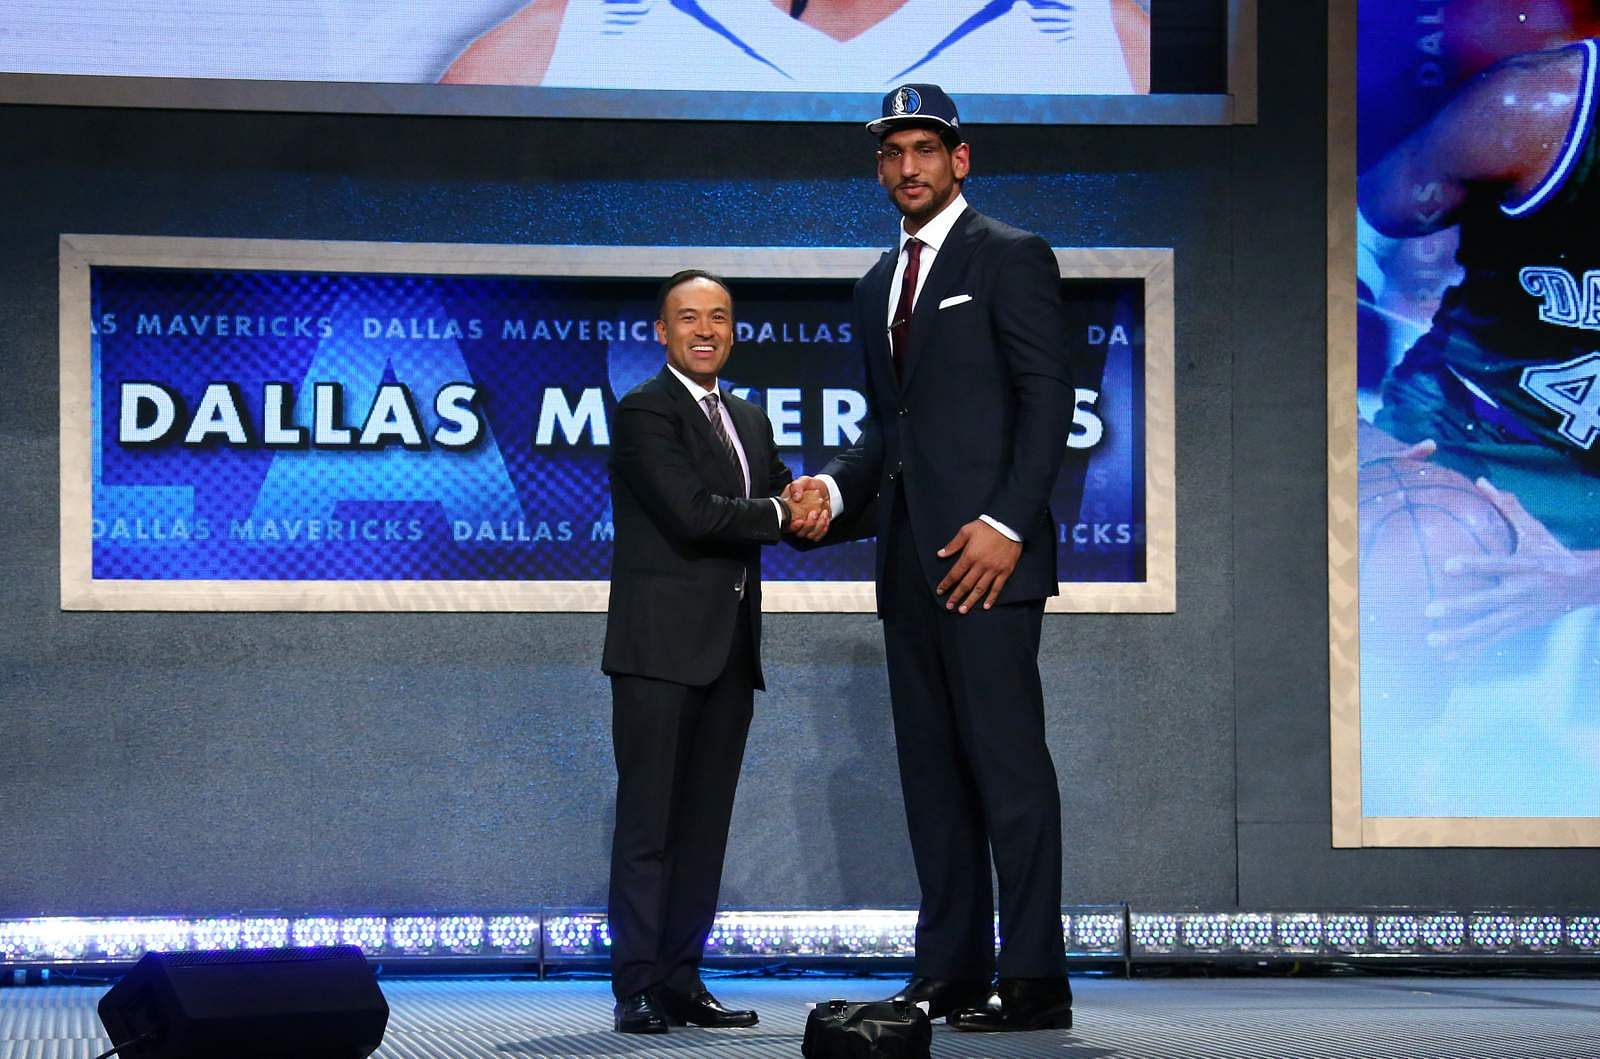 BROOKLYN, NY - JUNE 25: Satnam Singh shakes hands with Deputy Commissioner and Chief Operating Officer of the National Basketball Association, Mark Tatum after being selected number fifty two overall by the Dallas Mavericks during the 2015 NBA Draft on June 25, 2015 at Barclays Center in Brooklyn, New York. NOTE TO USER: User expressly acknowledges and agrees that, by downloading and or using this photograph, User is consenting to the terms and conditions of the Getty Images License Agreement. Mandatory Copyright Notice: Copyright 2015 NBAE (Photo by Nathaniel S. Butler /NBAE via Getty Images)